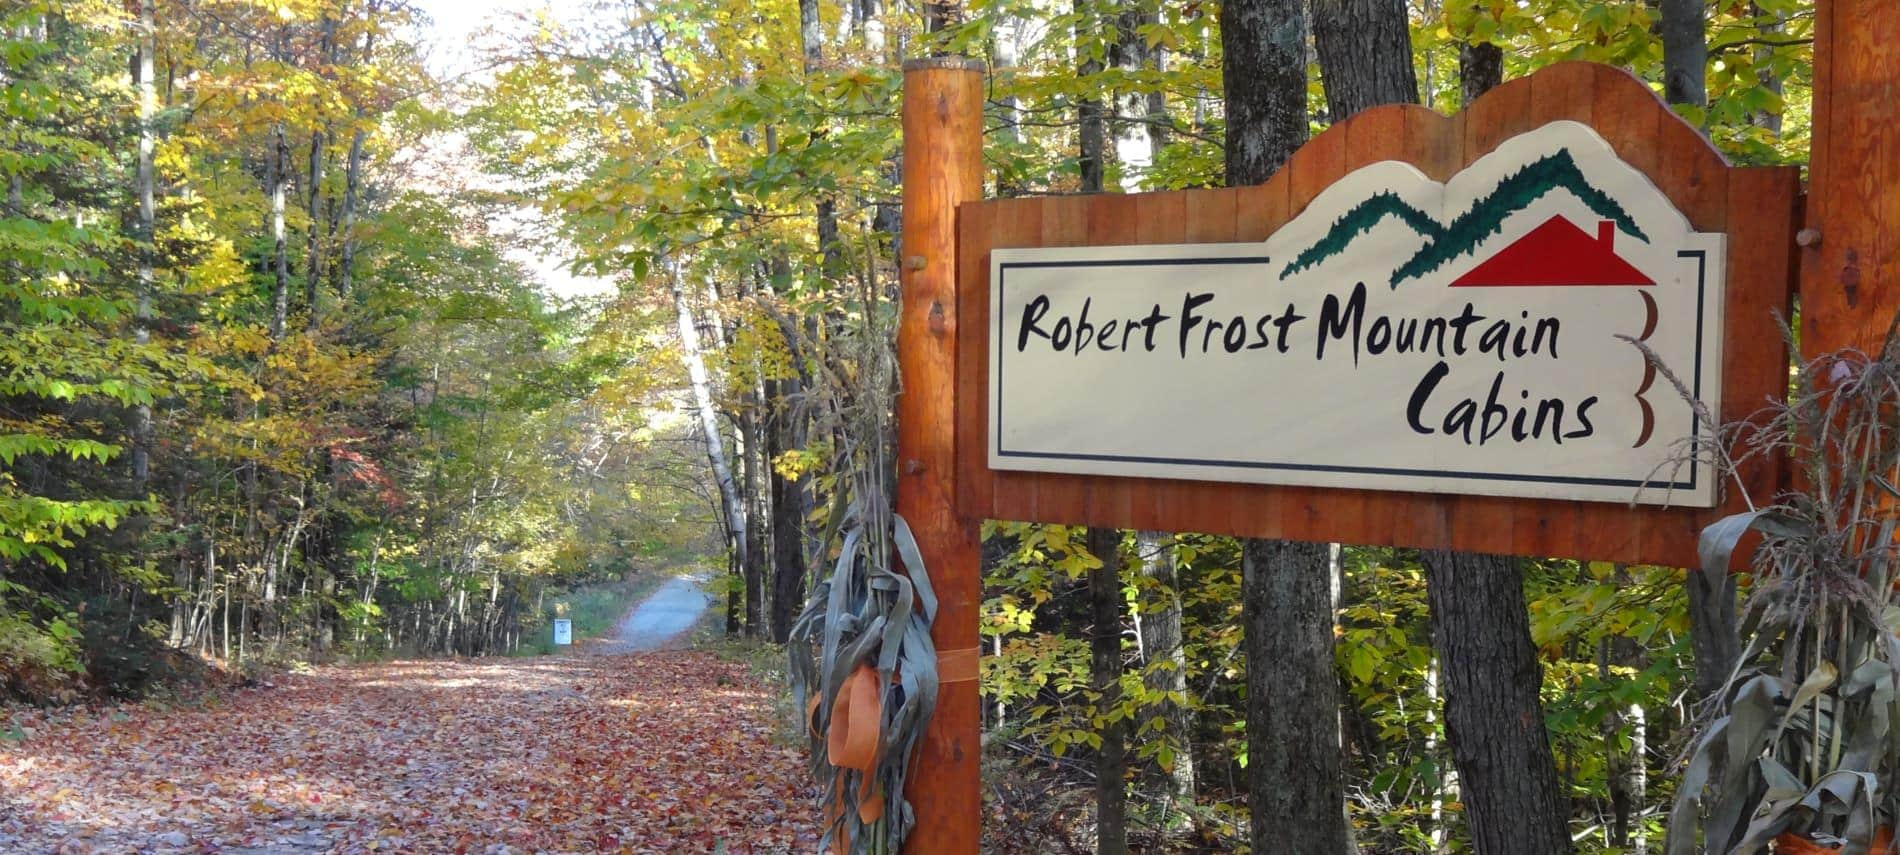 Wooded entrance sign that says, Robert Frost Mountain Cabins, and a road covered with fallen leaves and surrounded by trees